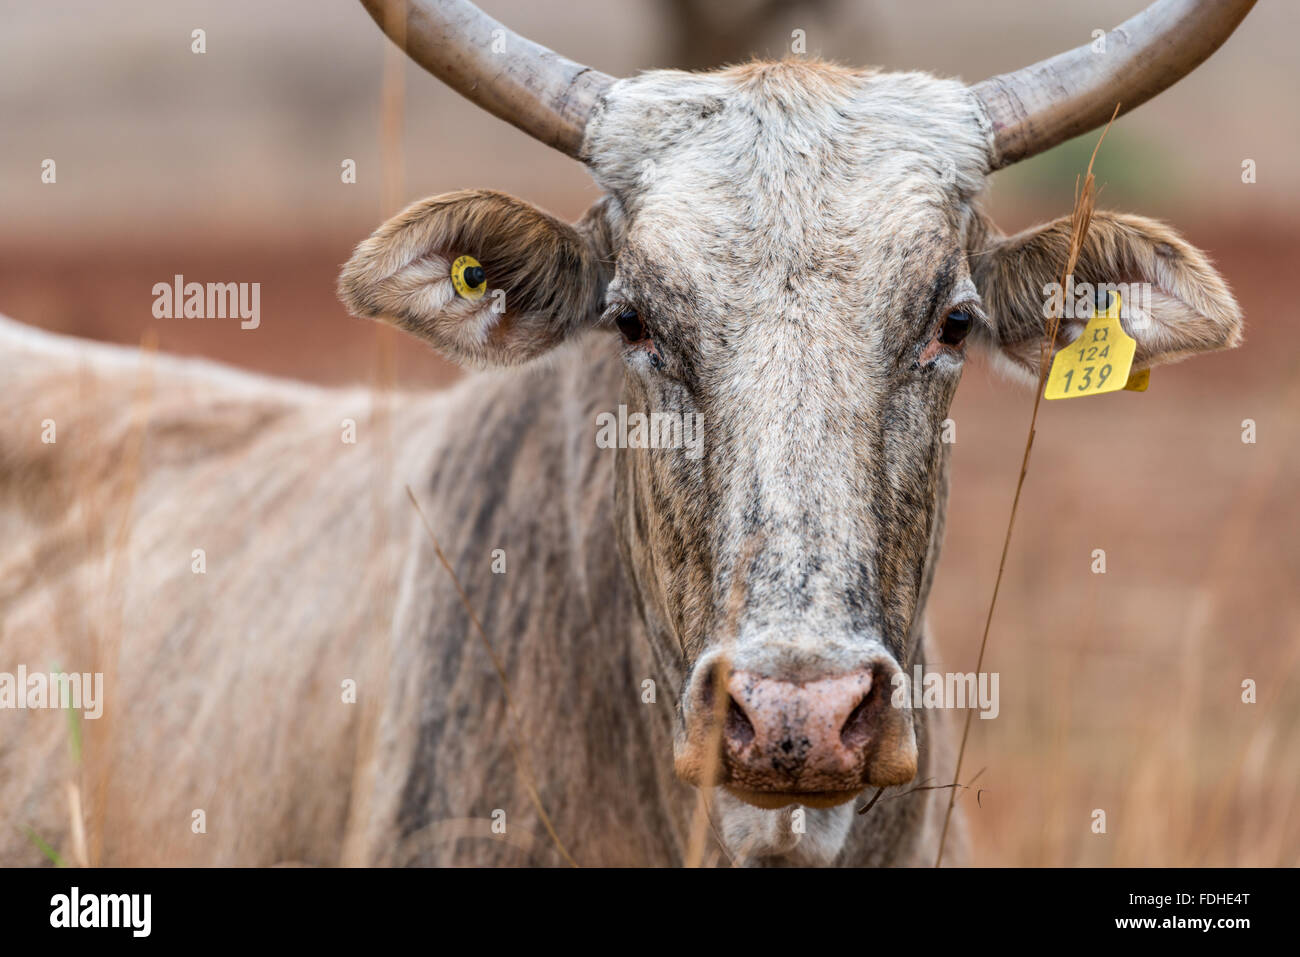 Beef cattle in the Hhohho region of Swaziland, Africa. Stock Photo